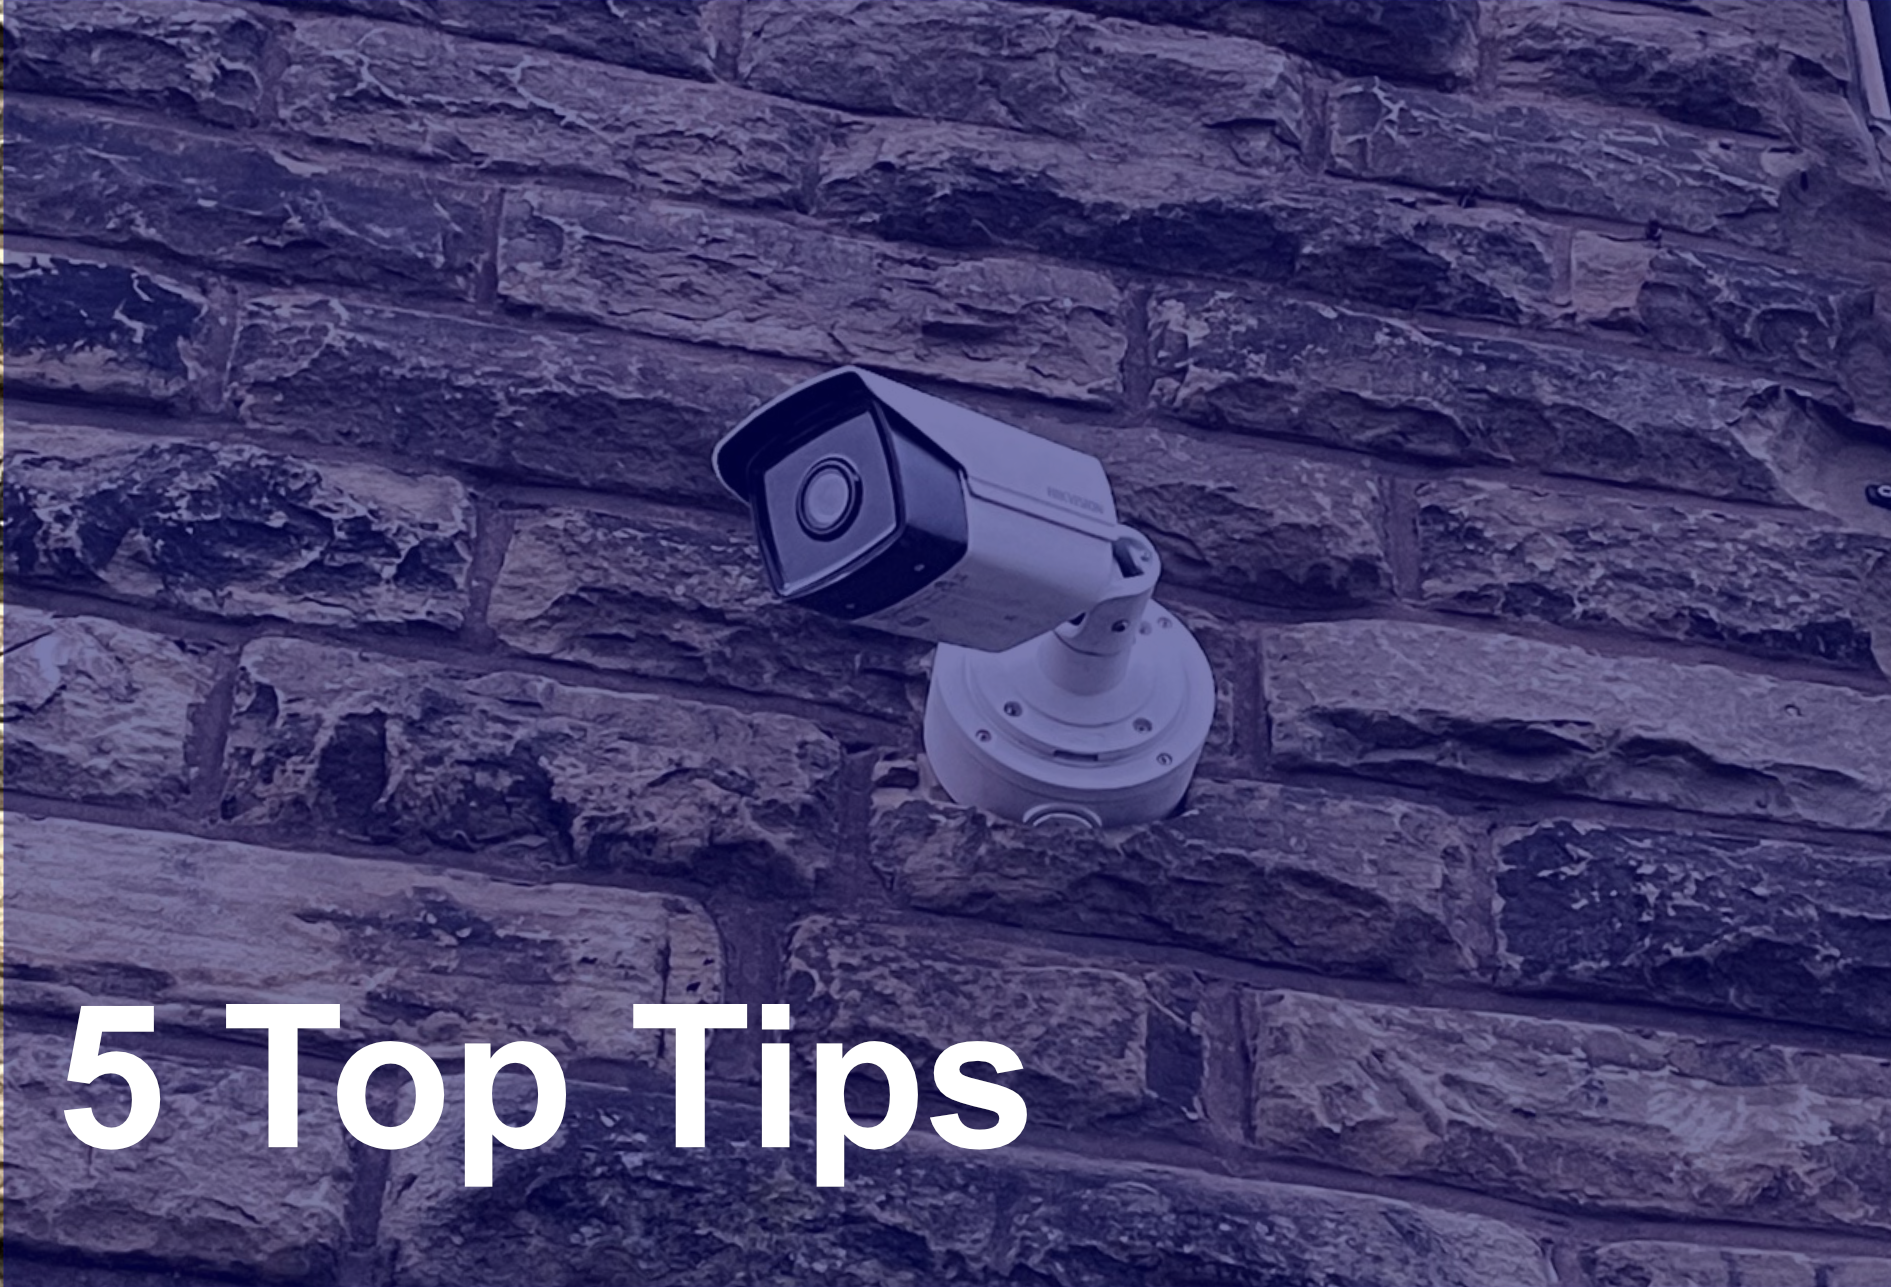 5 top tips for choosing cctv